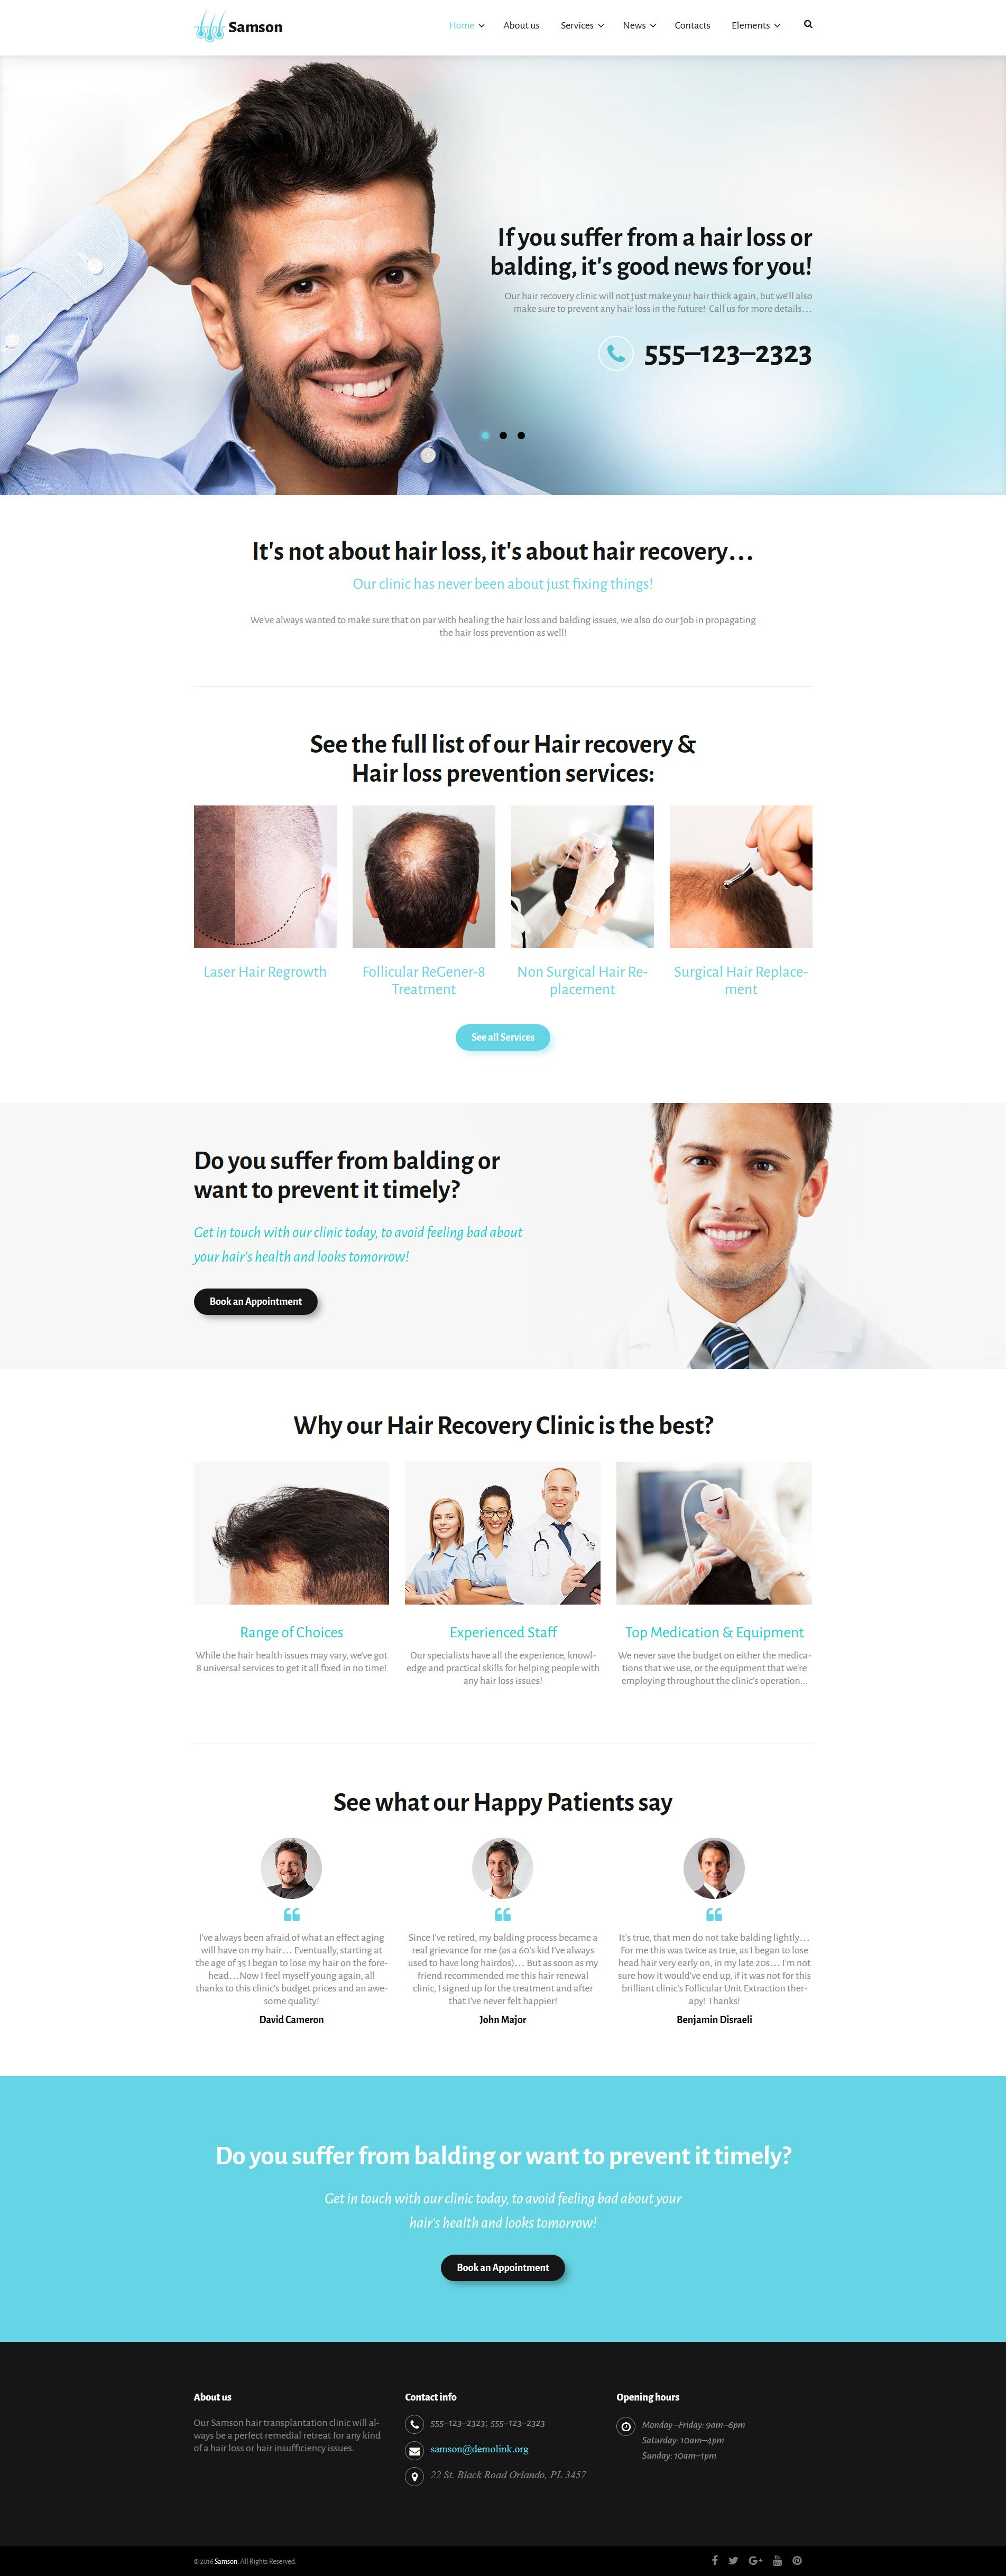 Samson - Hair Recovery Clinic WordPress Theme - screenshot